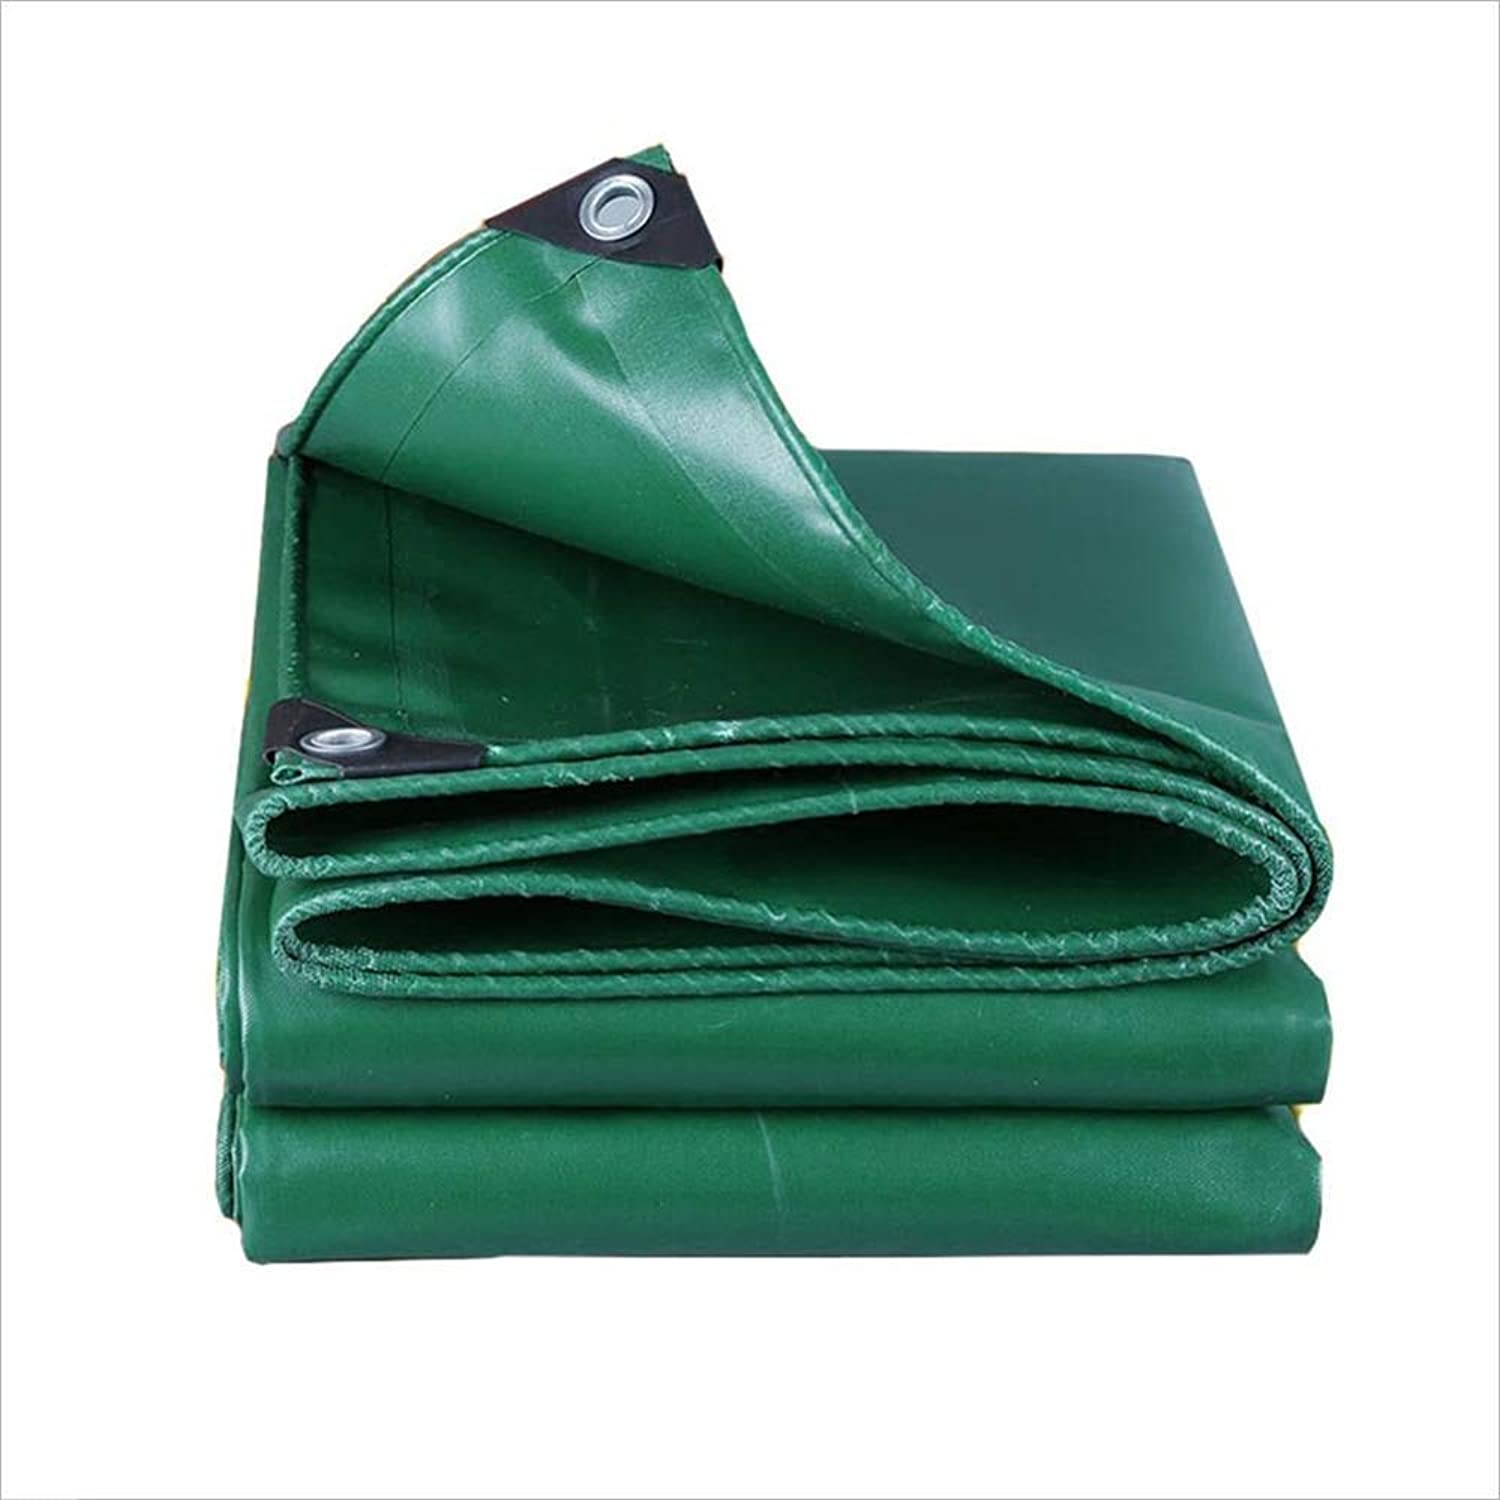 Multifunctional Tarpaulin Camping Windproof Cloth Swimming Pool Durable Waterproof Tarpaulin UV Predection Green 250G M2 (Size   5mx6m)